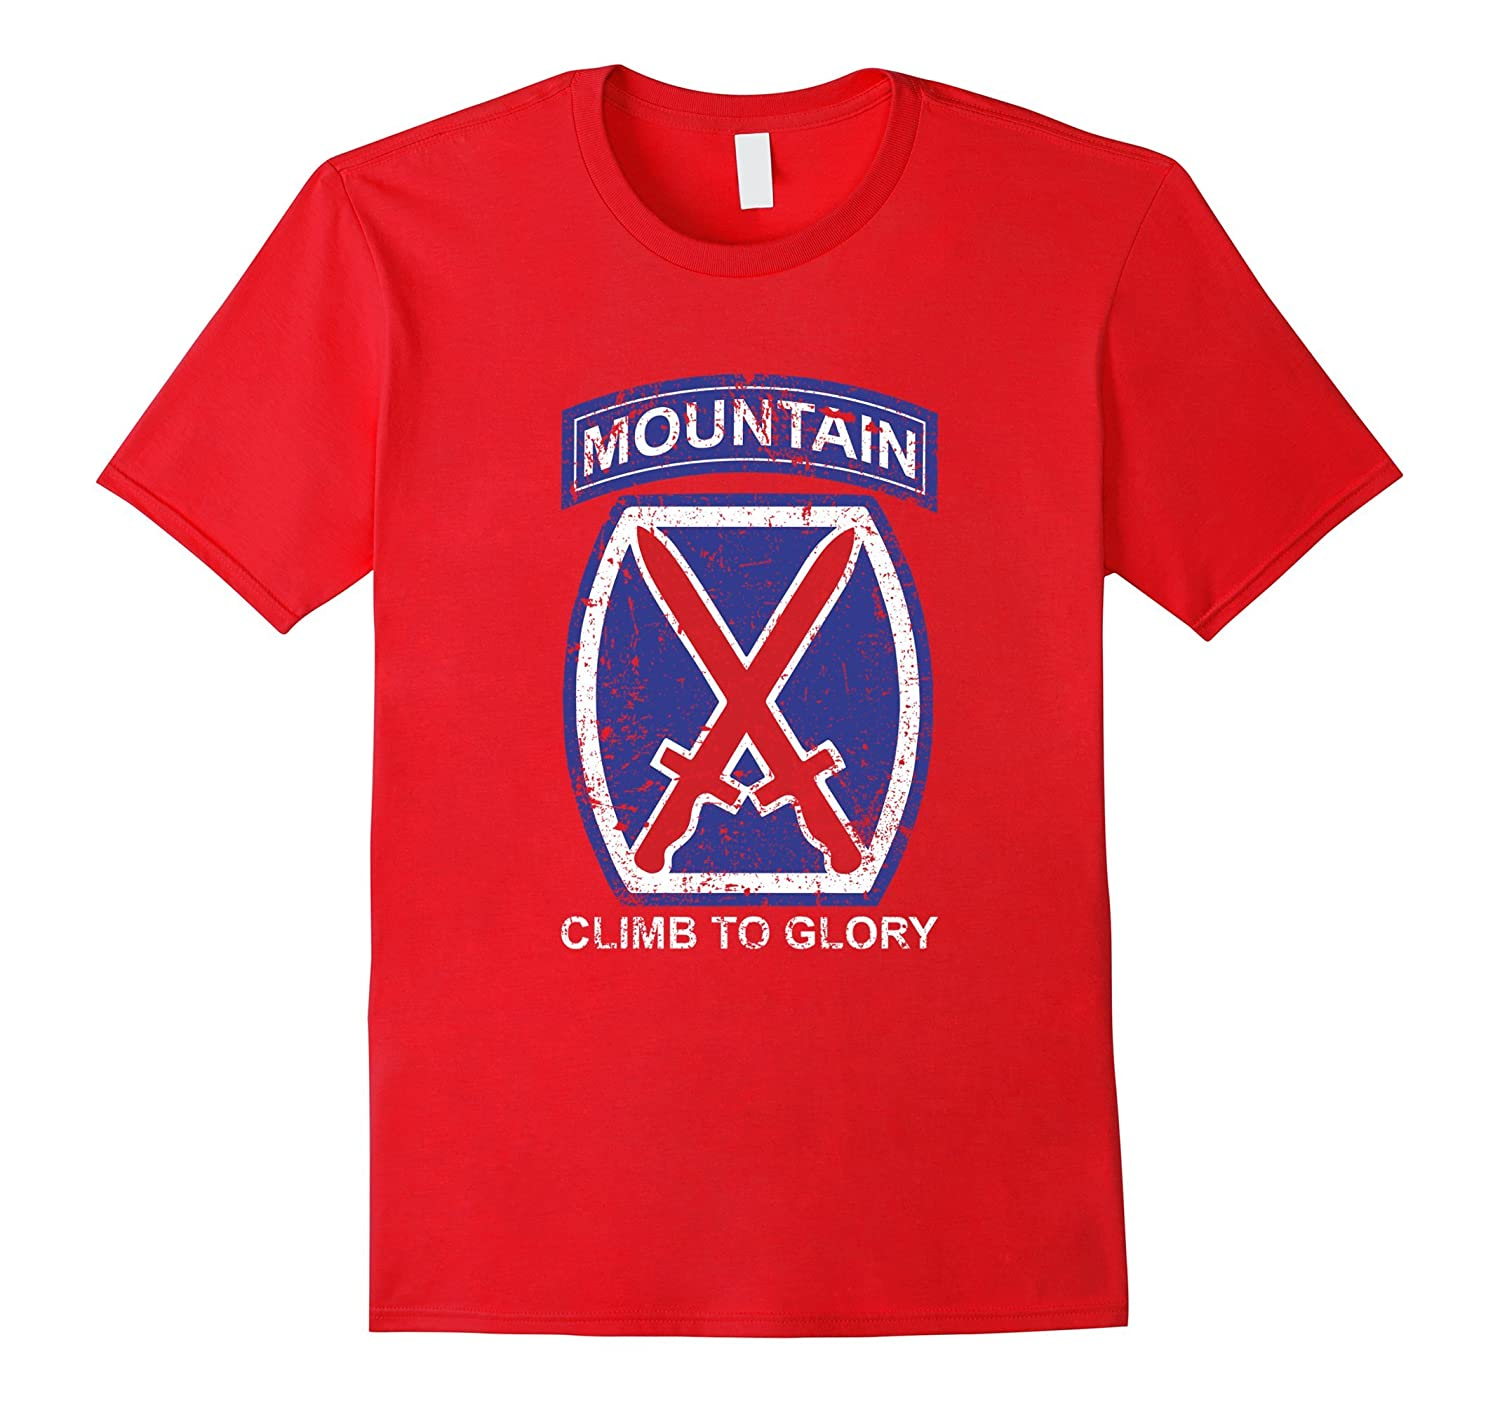 10th Mountain Division T Shirt Climb To Glory - 20324-PL